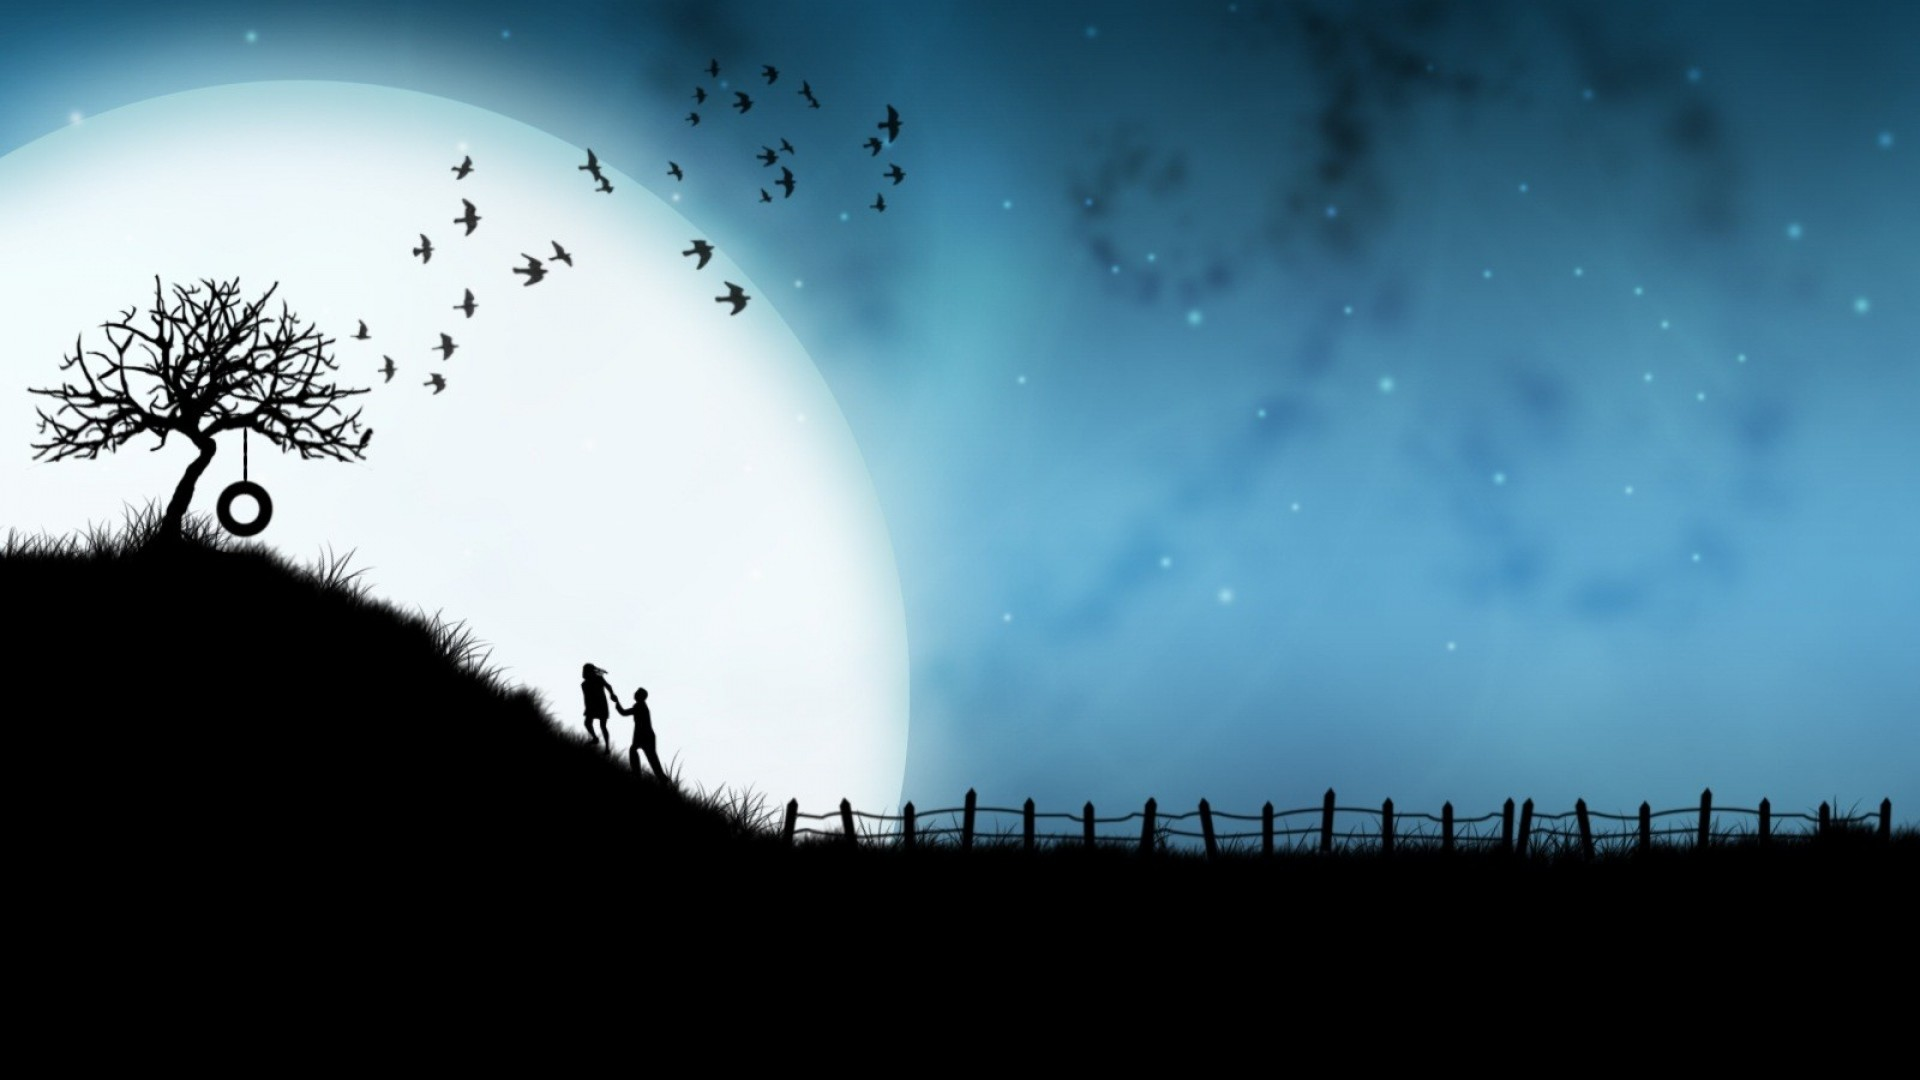 Preview wallpaper steam, tree, love, hugs, birds, night, silhouettes  1920×1080